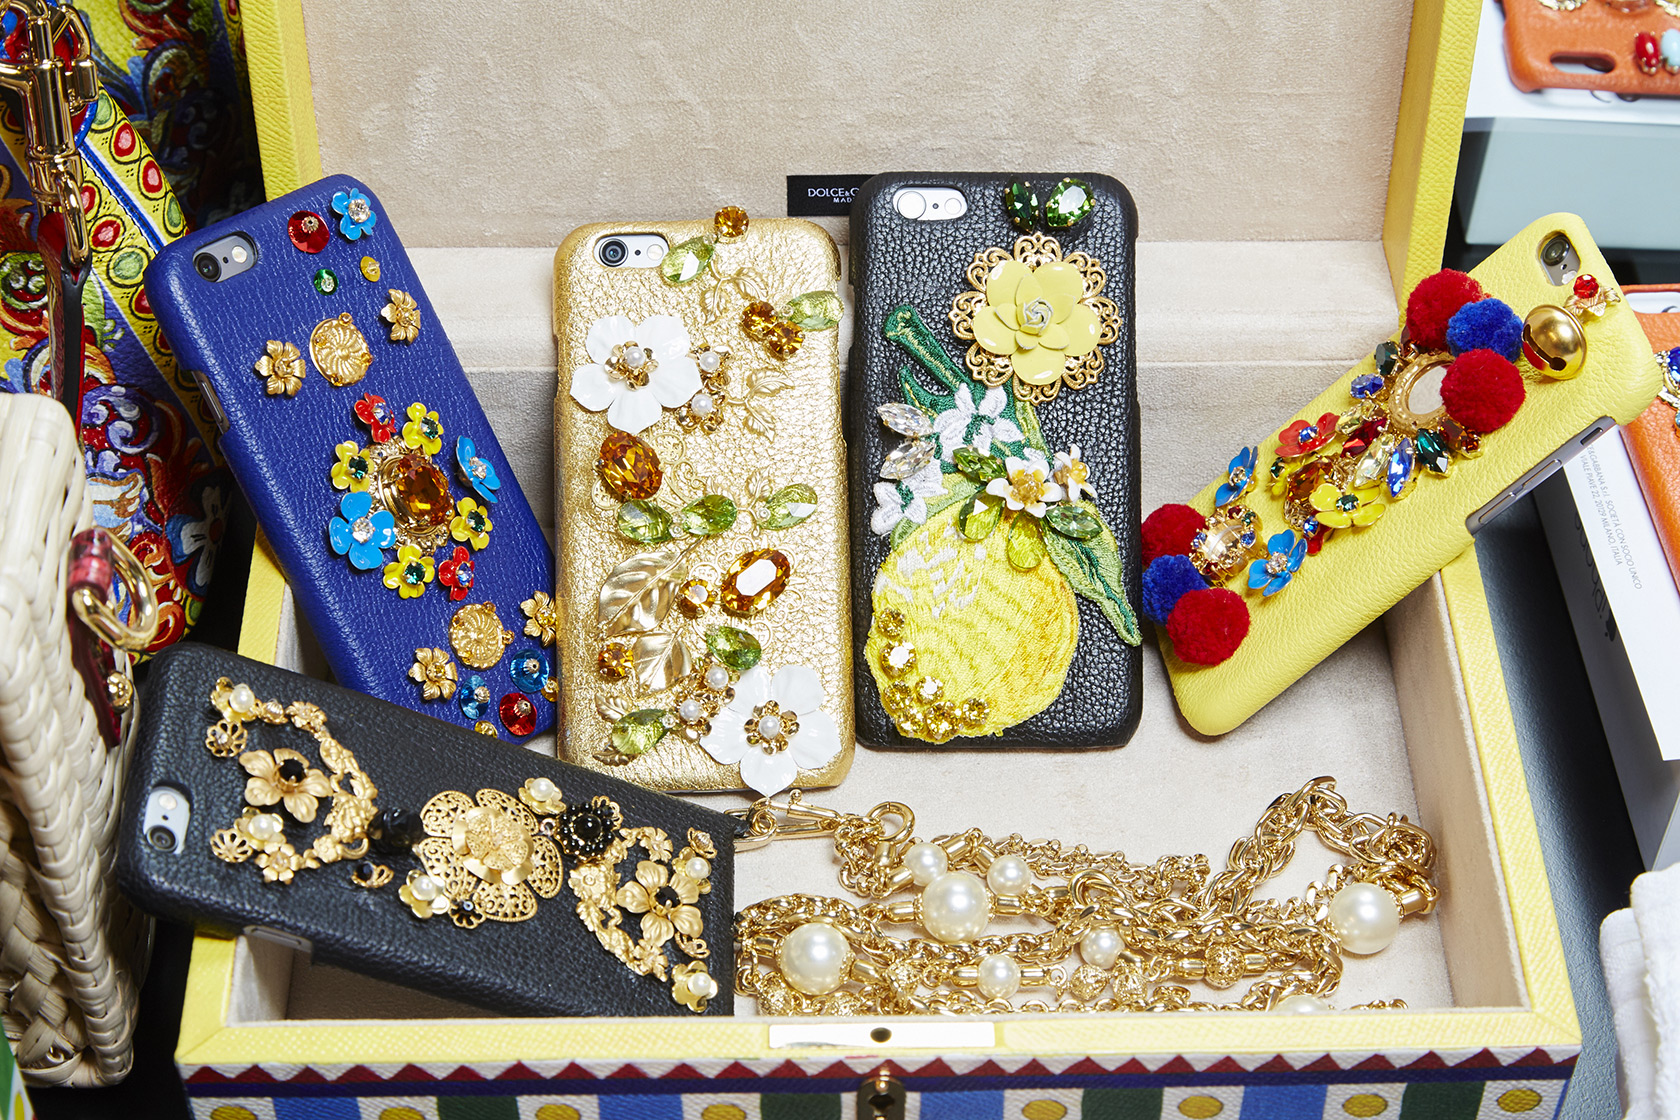 dolce-and-gabbana-spring-summer-2016-iphone-cover-embellished